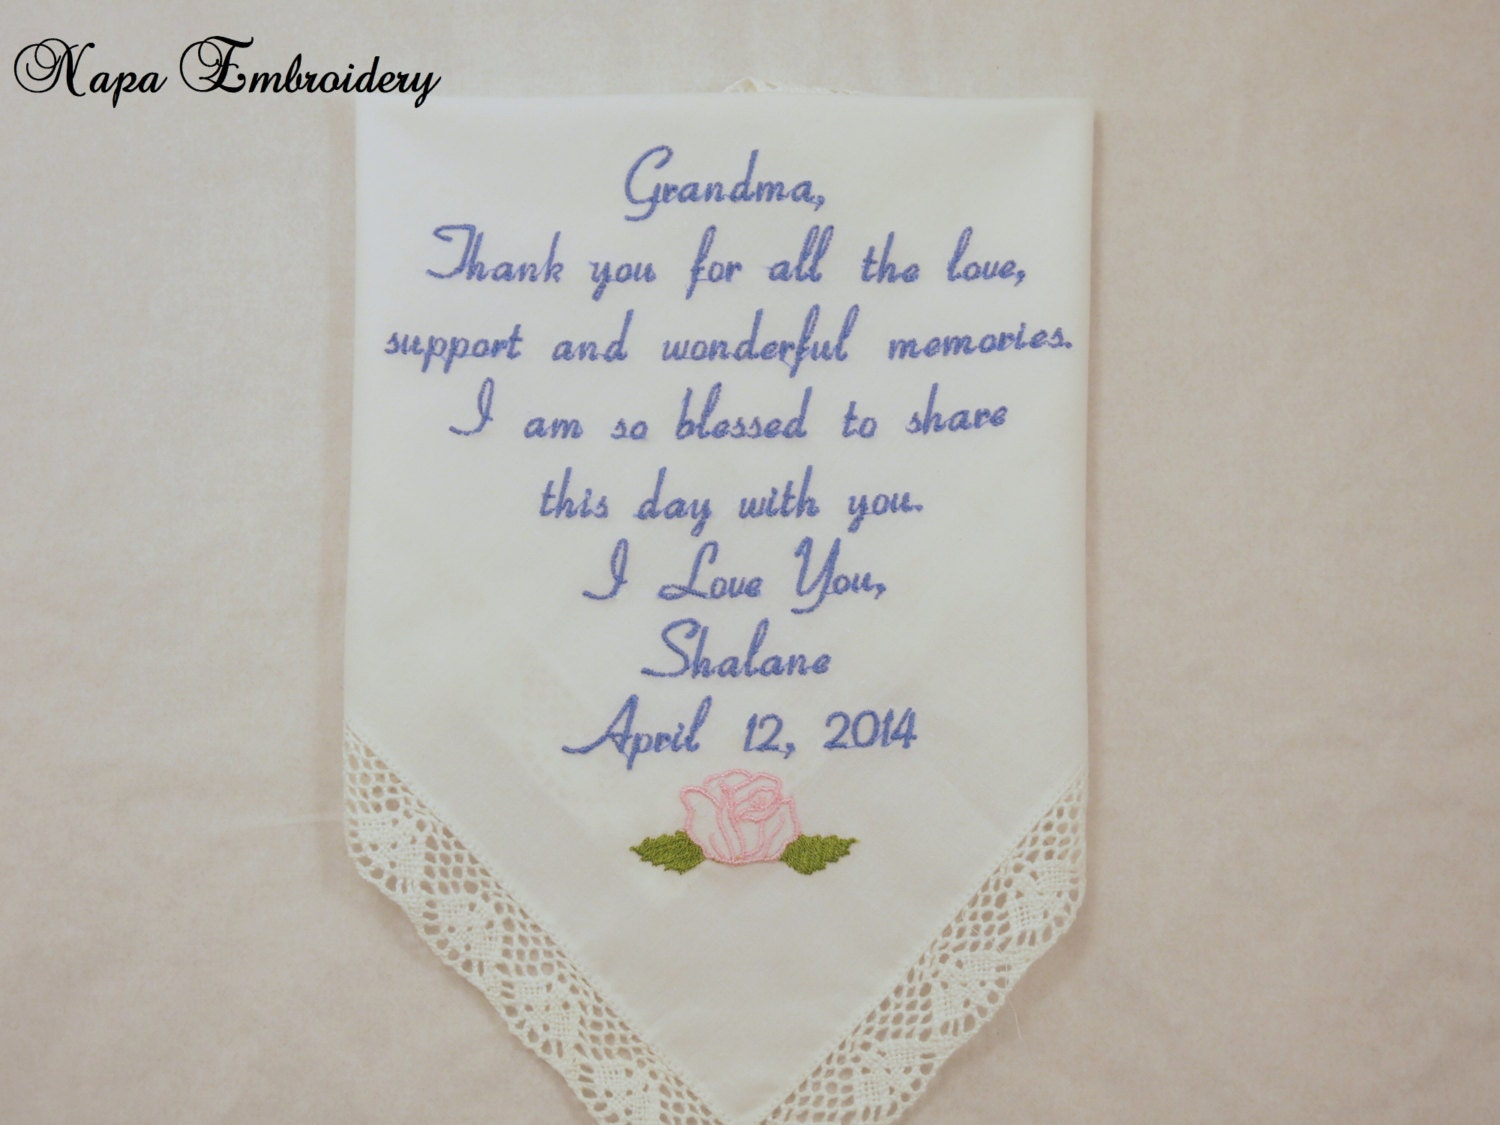 Gifts For Grandma Embroidered Wedding Handkerchief Great For Grandparent Grandmother Oma Of The